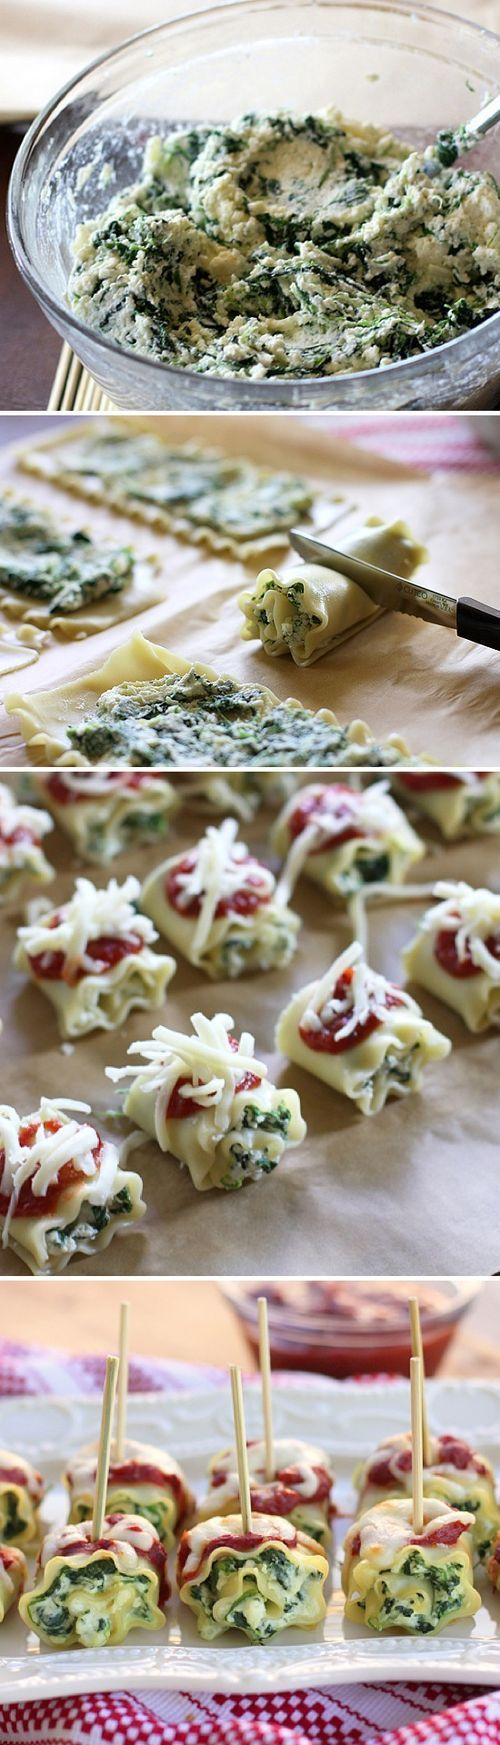 Lasagna rolls - how clever! Great idea for parties with finger foods!: